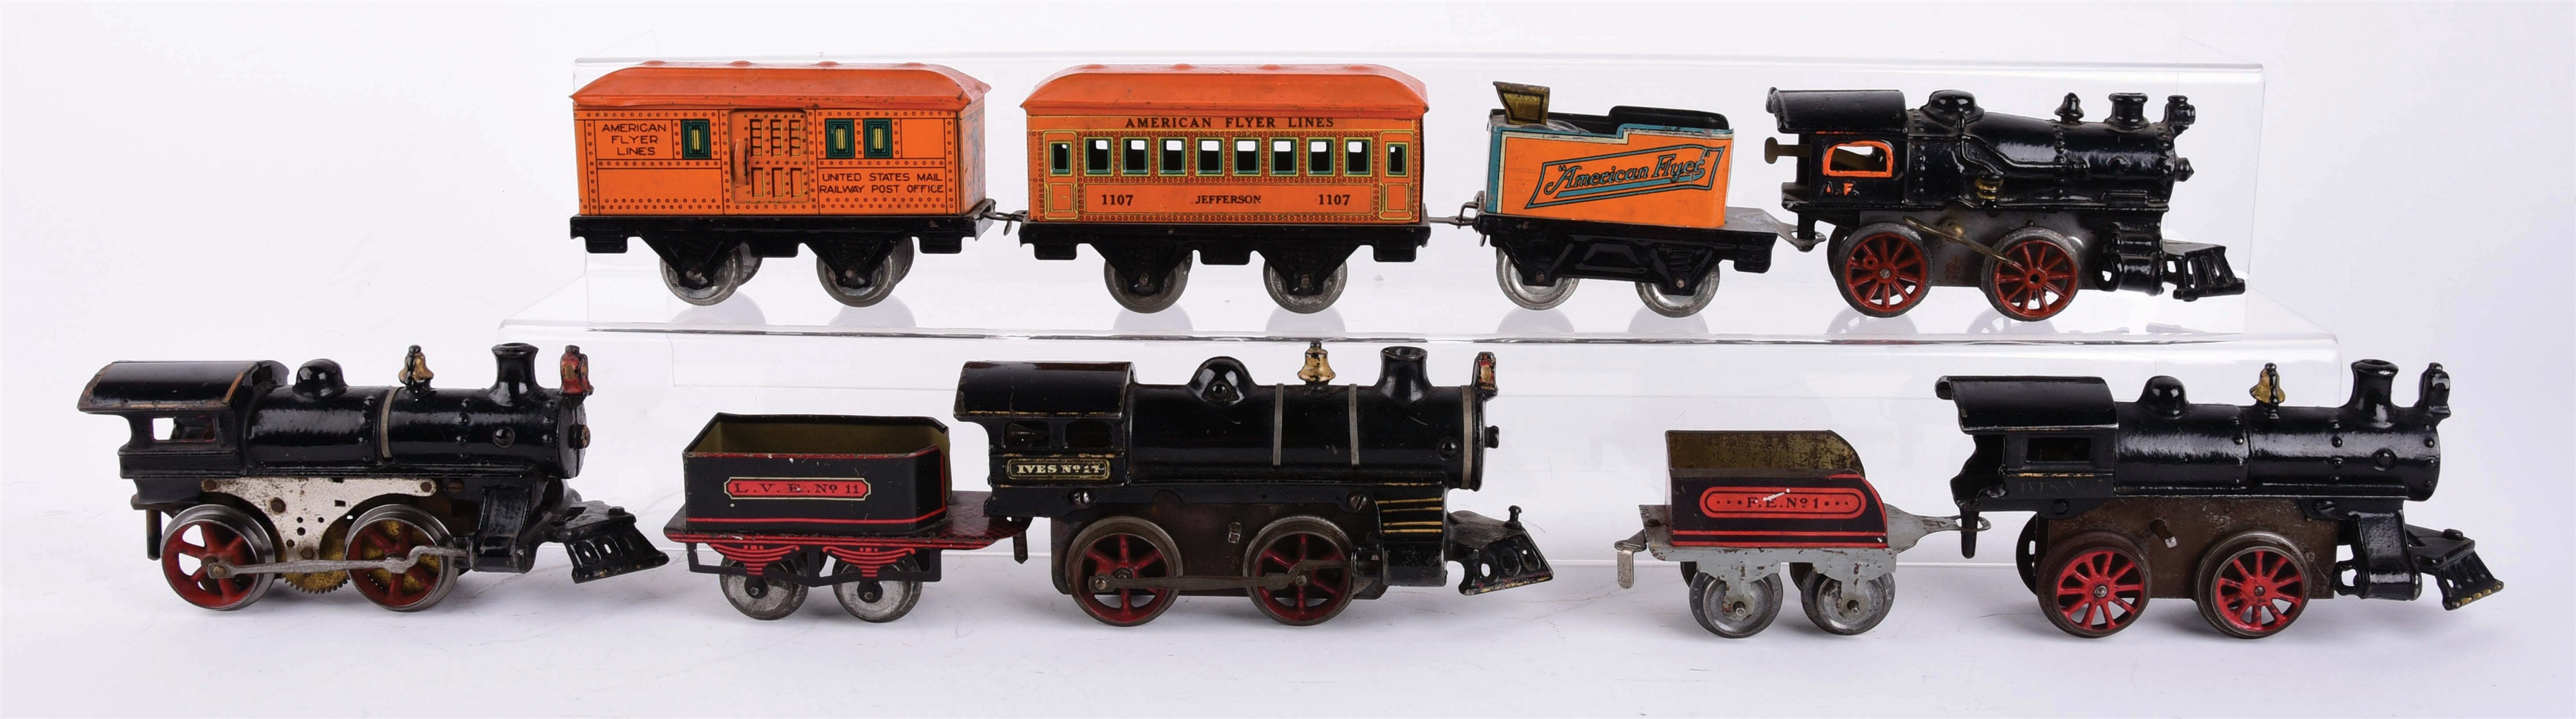 NICE EARLY IVES AND AMERICAN FLYER O GAUGE TRAIN LOT.